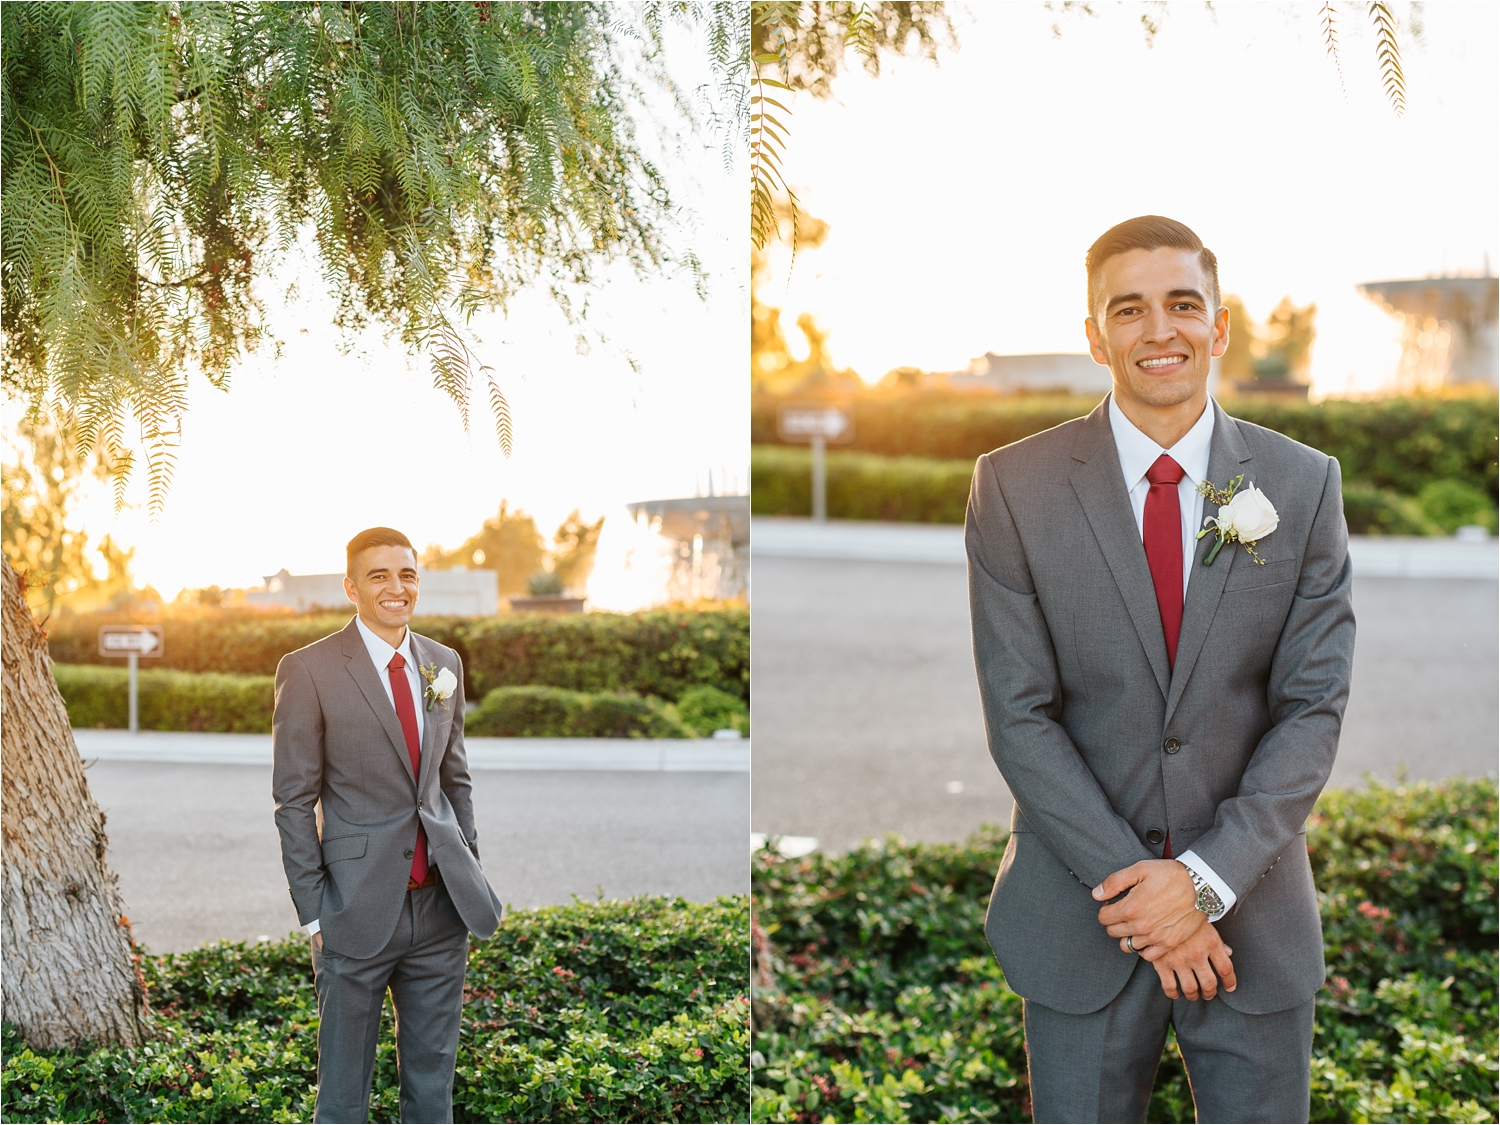 Groom Portraits at sunset - https://brittneyhannonphotography.com